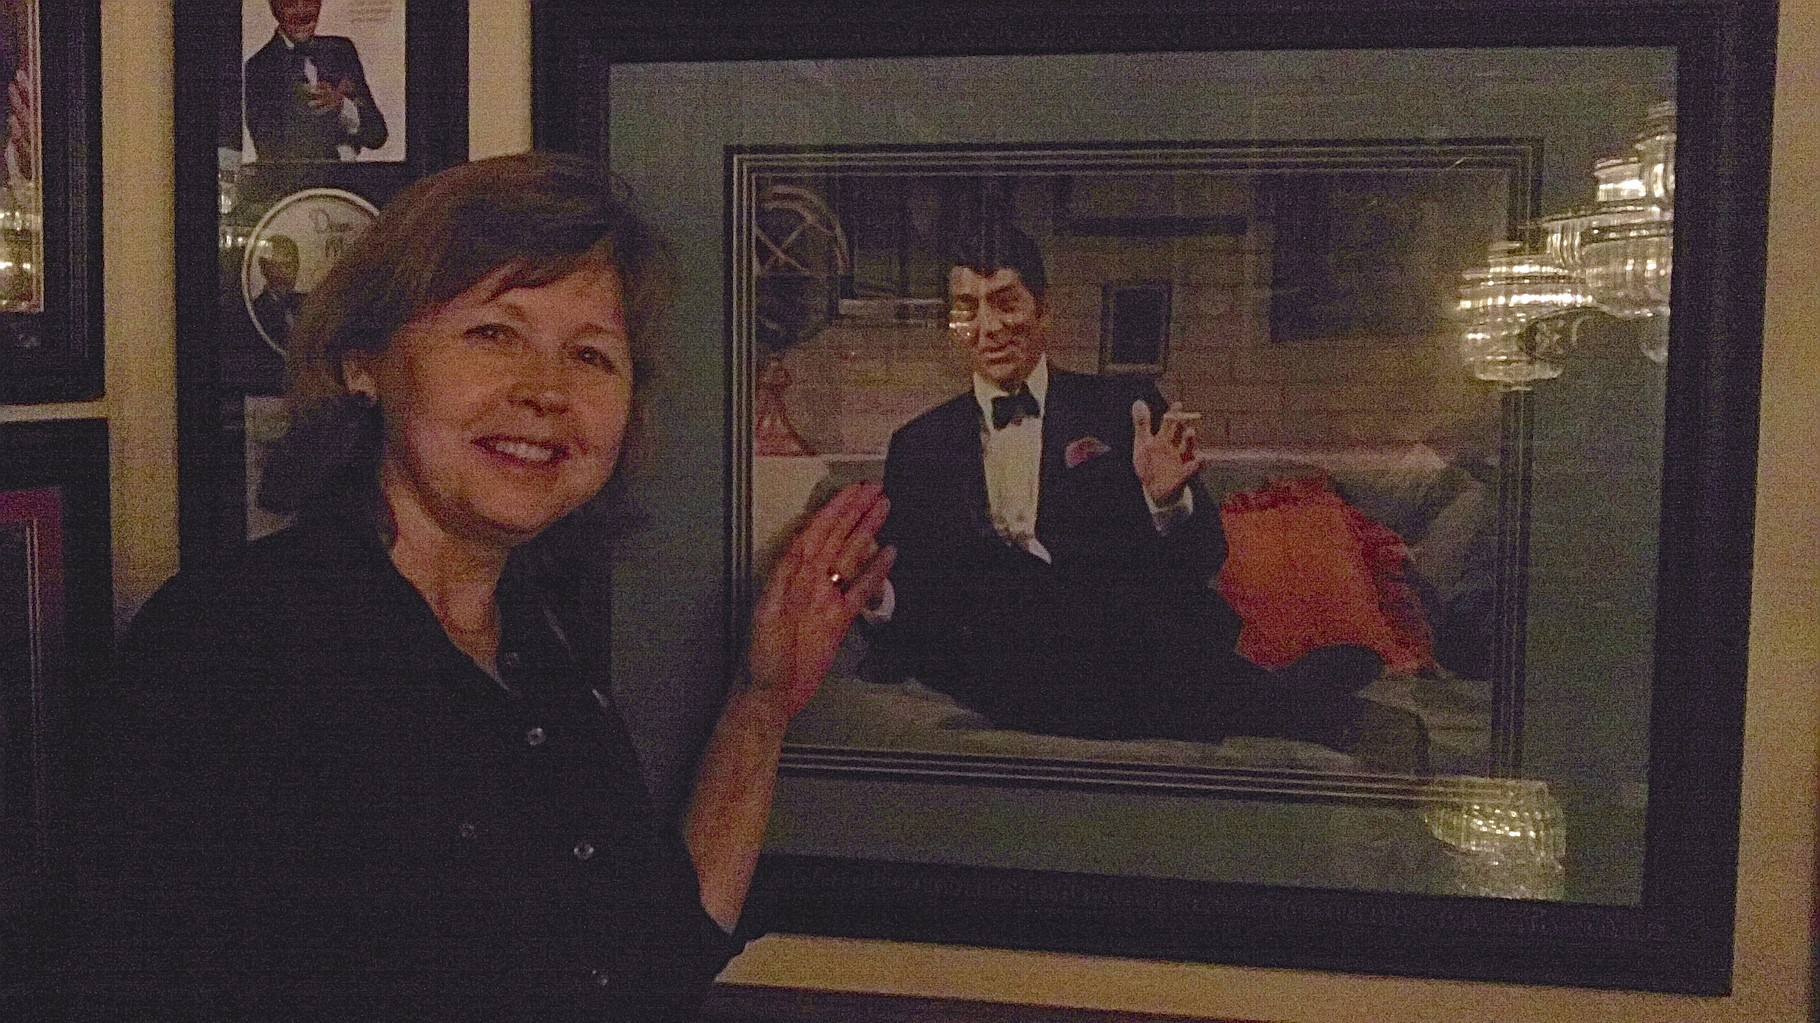 Barbara loves Dean Martin!